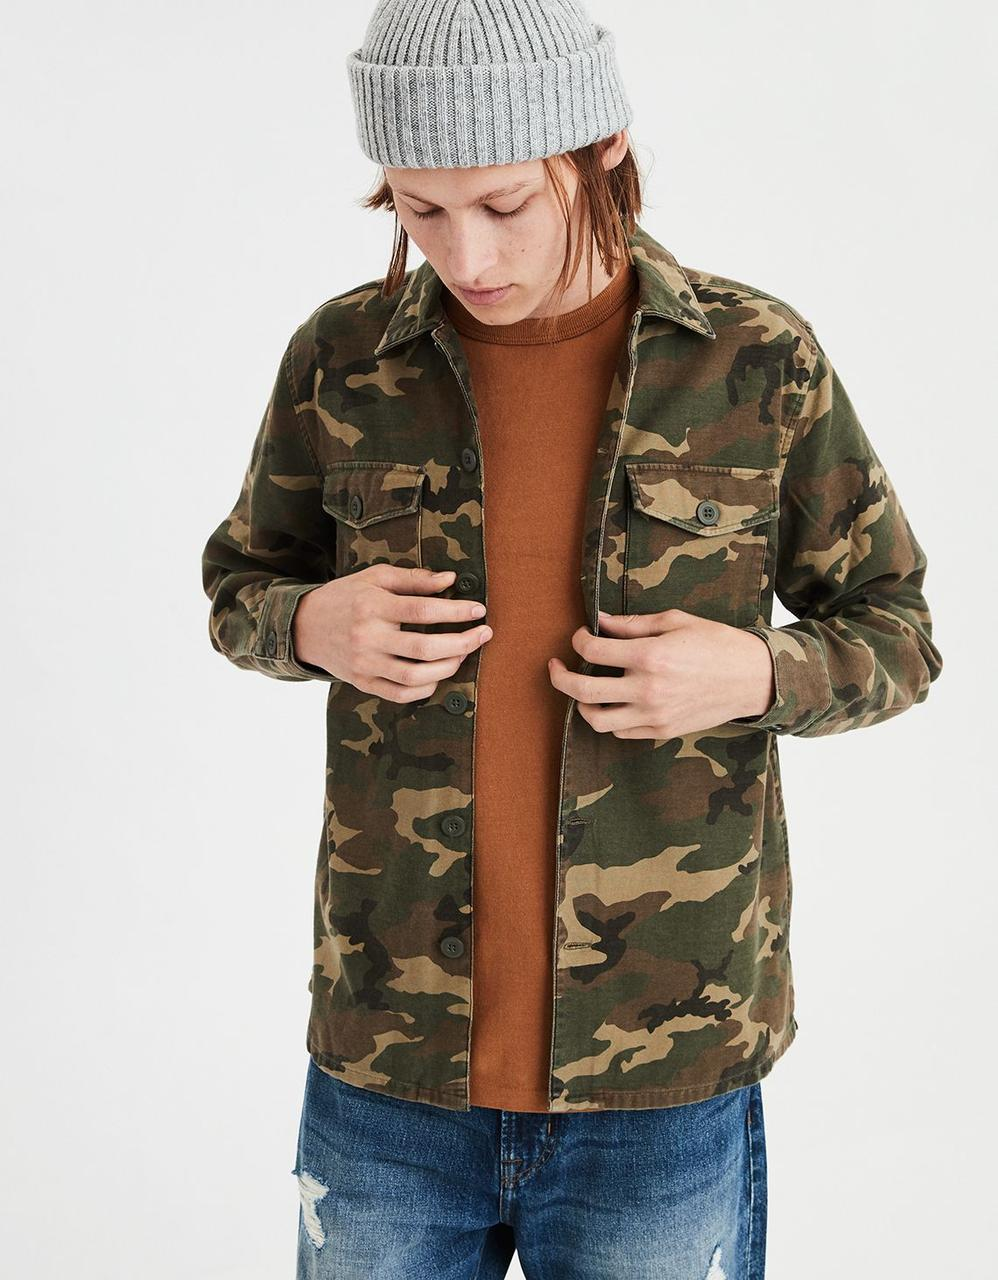 American Eagle Doesn T Seem Like The Kind Of Place To Look For This Thing